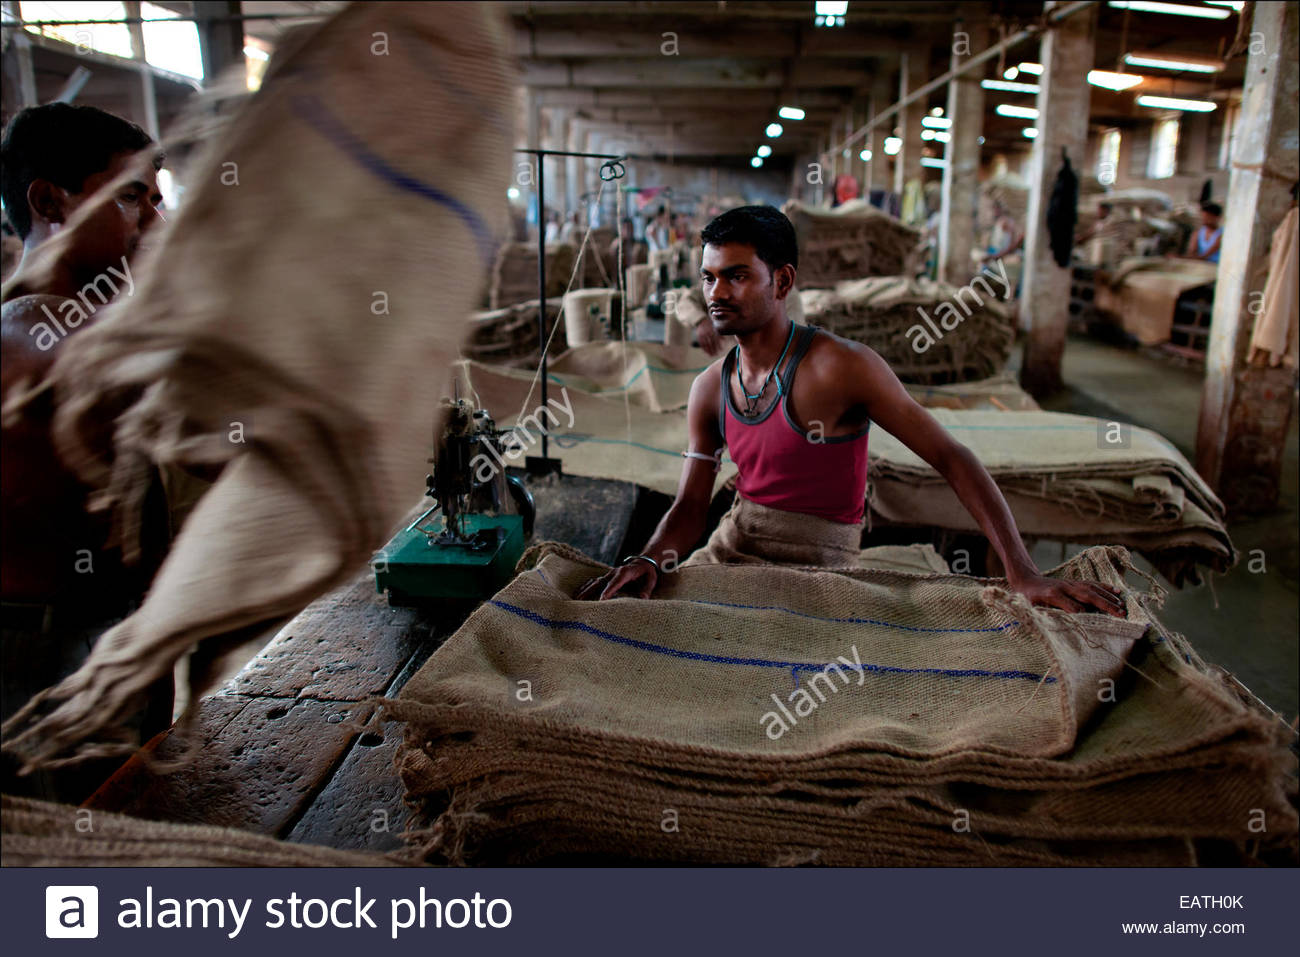 Environmentally friendly and newly popular burlap shipping sacks being made at the Hastings Jute Mill. - Stock Image